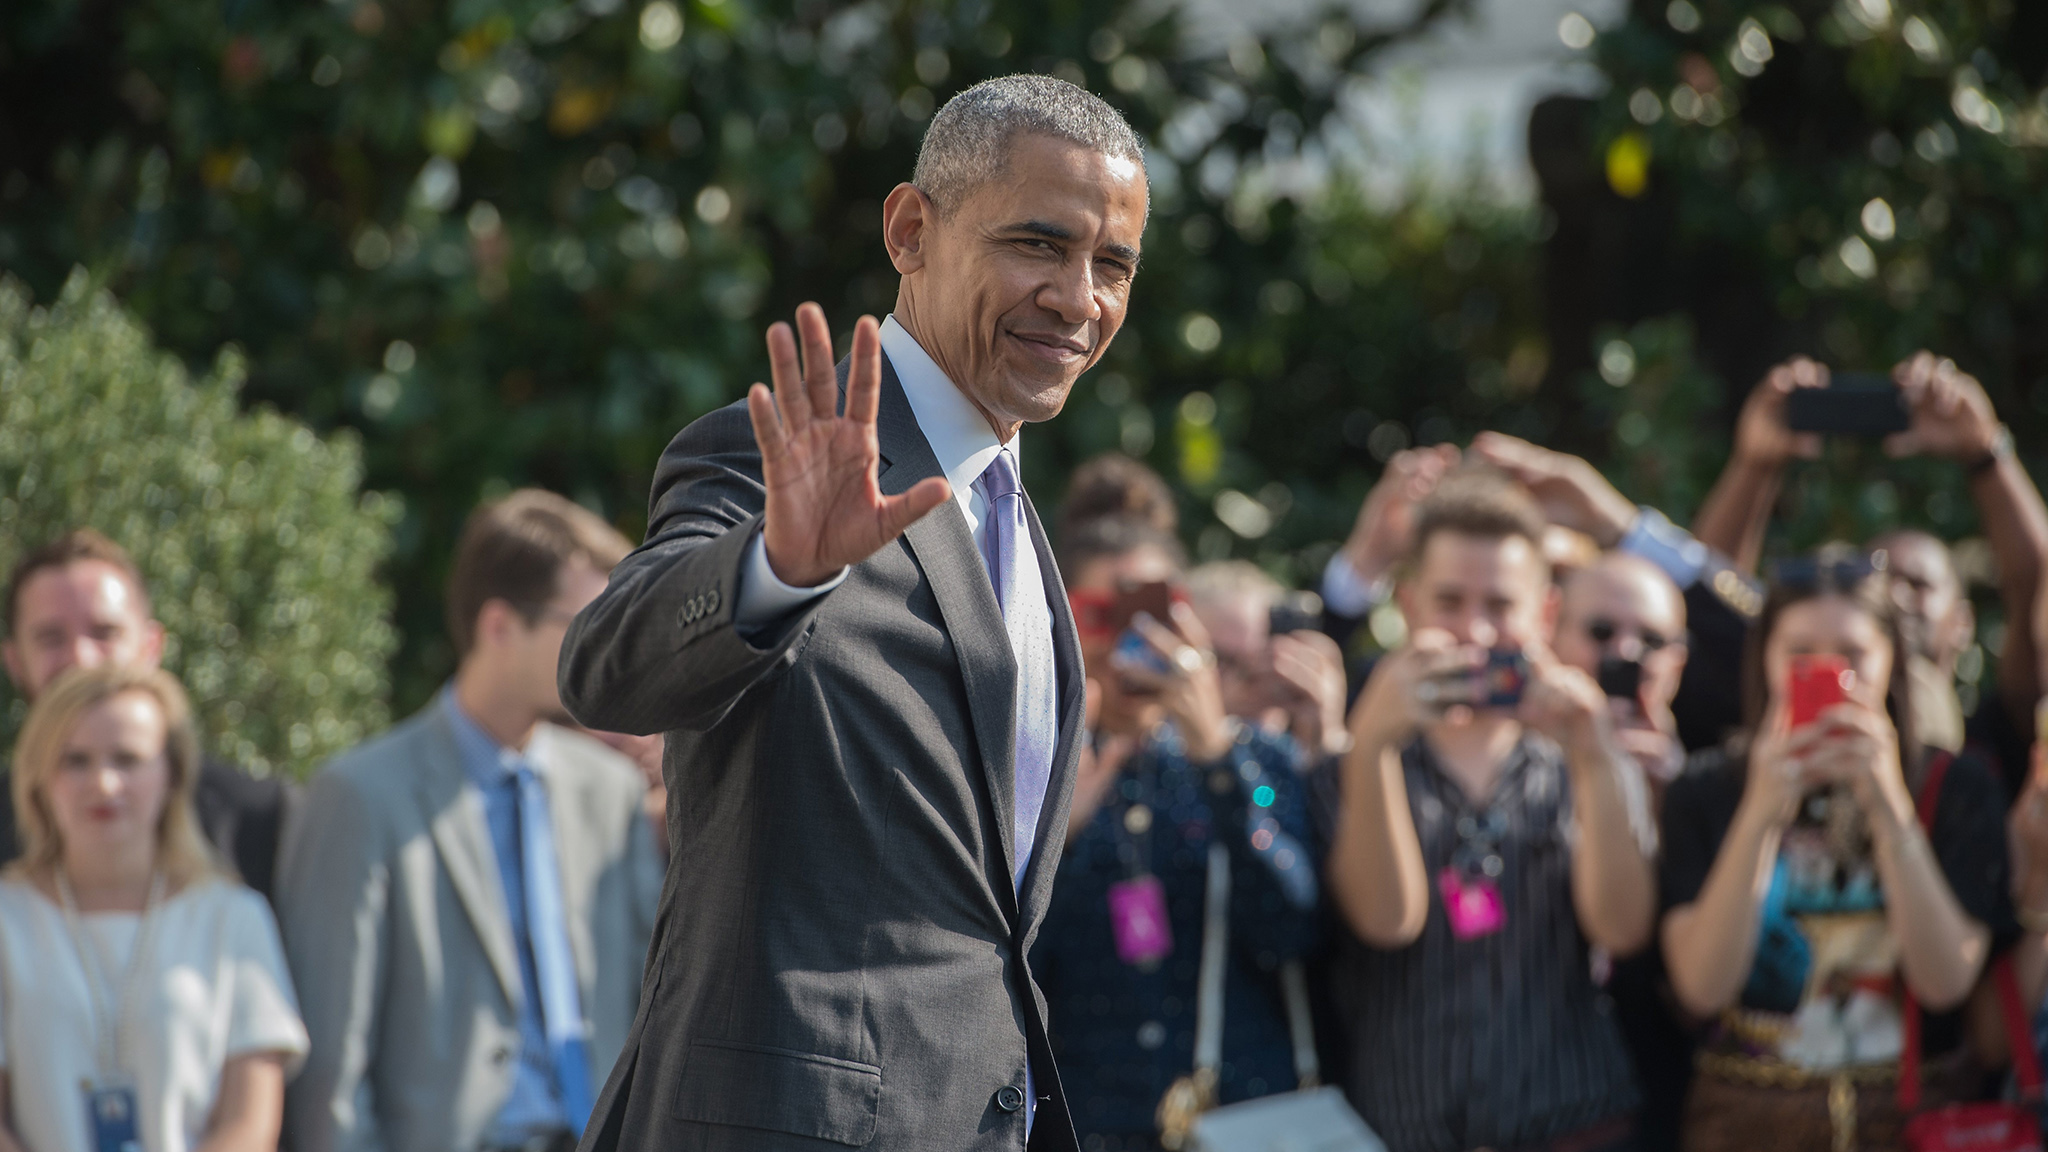 US President Barack Obama waves as he departs the White House in Washington, DC, on October 20, 2016 en route to Miami, Florida